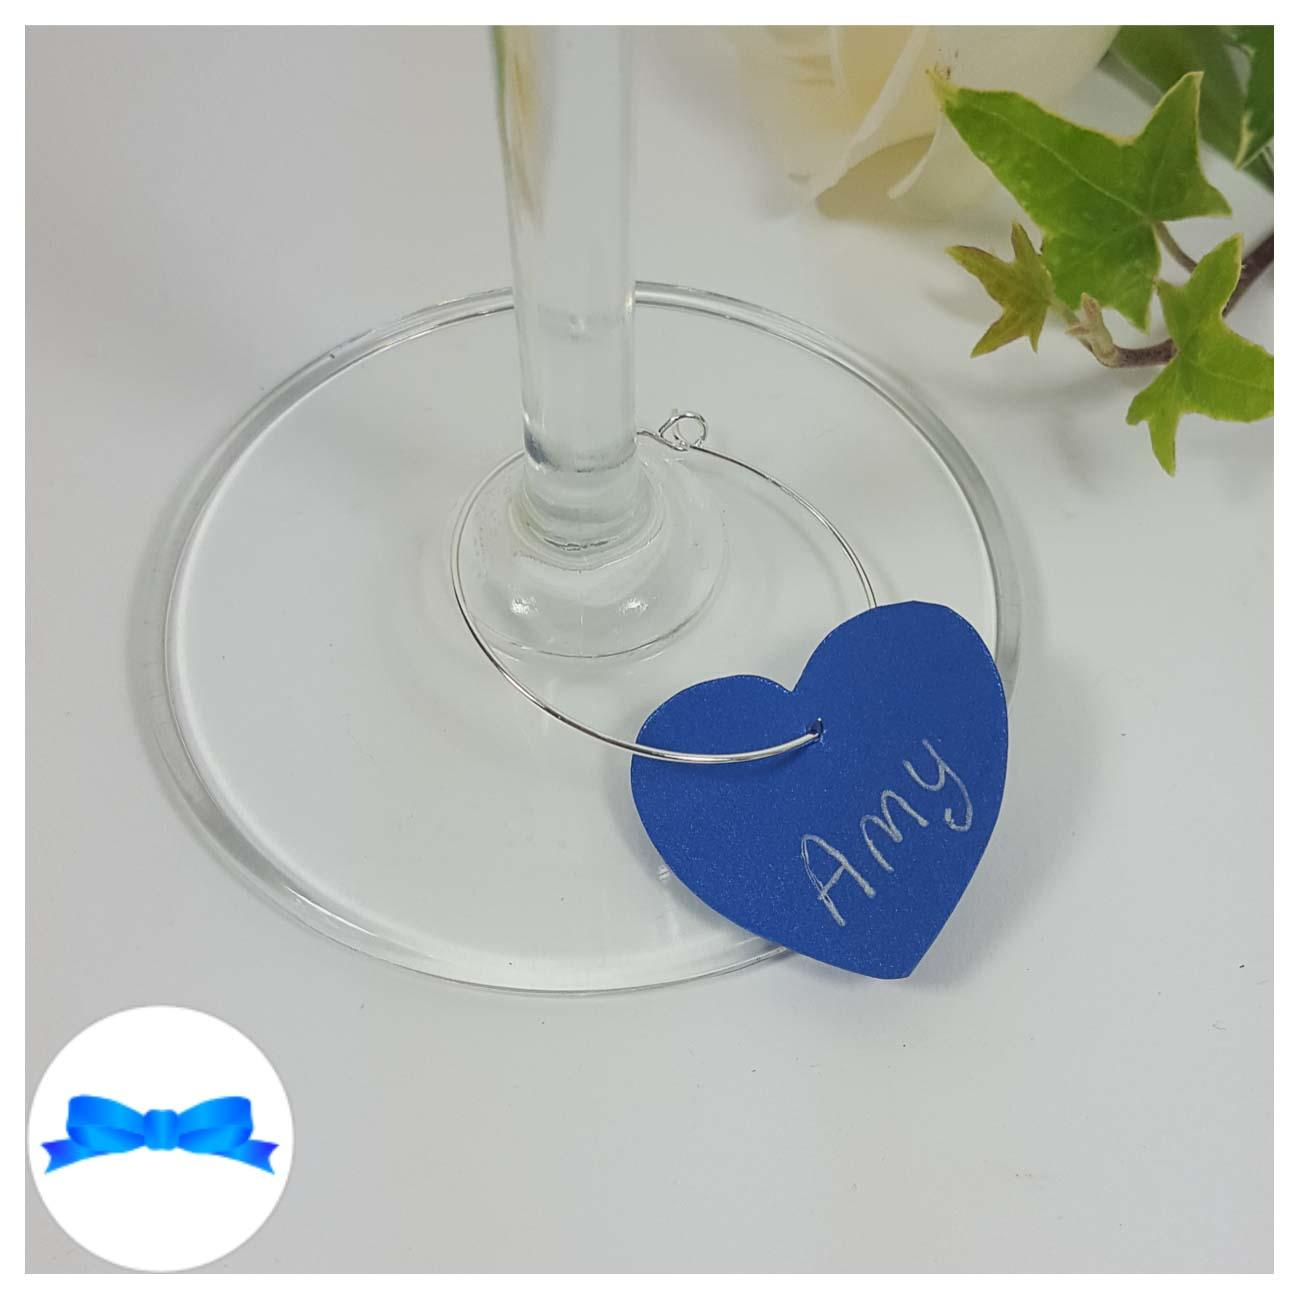 Royal blue heart shaped wine glass charm